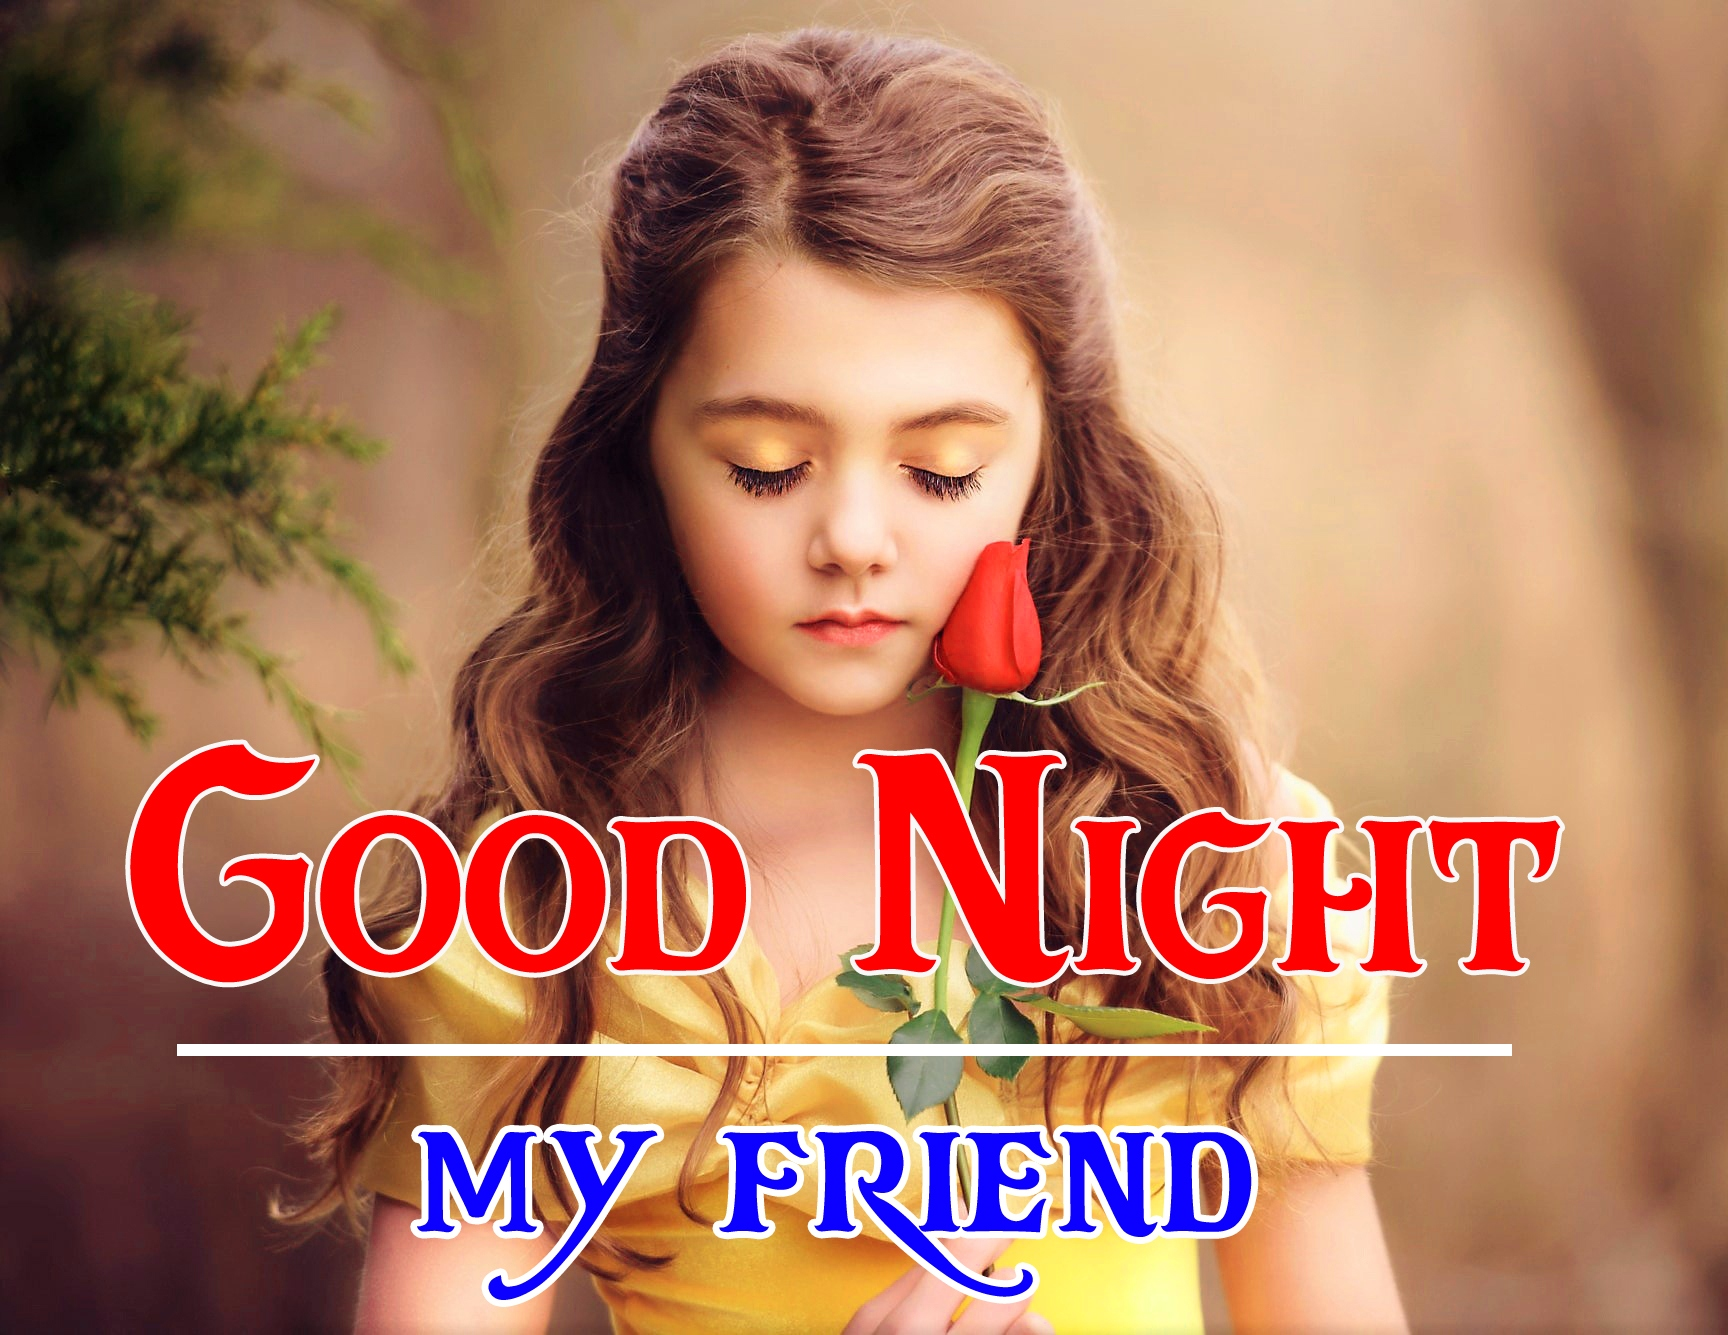 Good night wallpaper hd 56 1